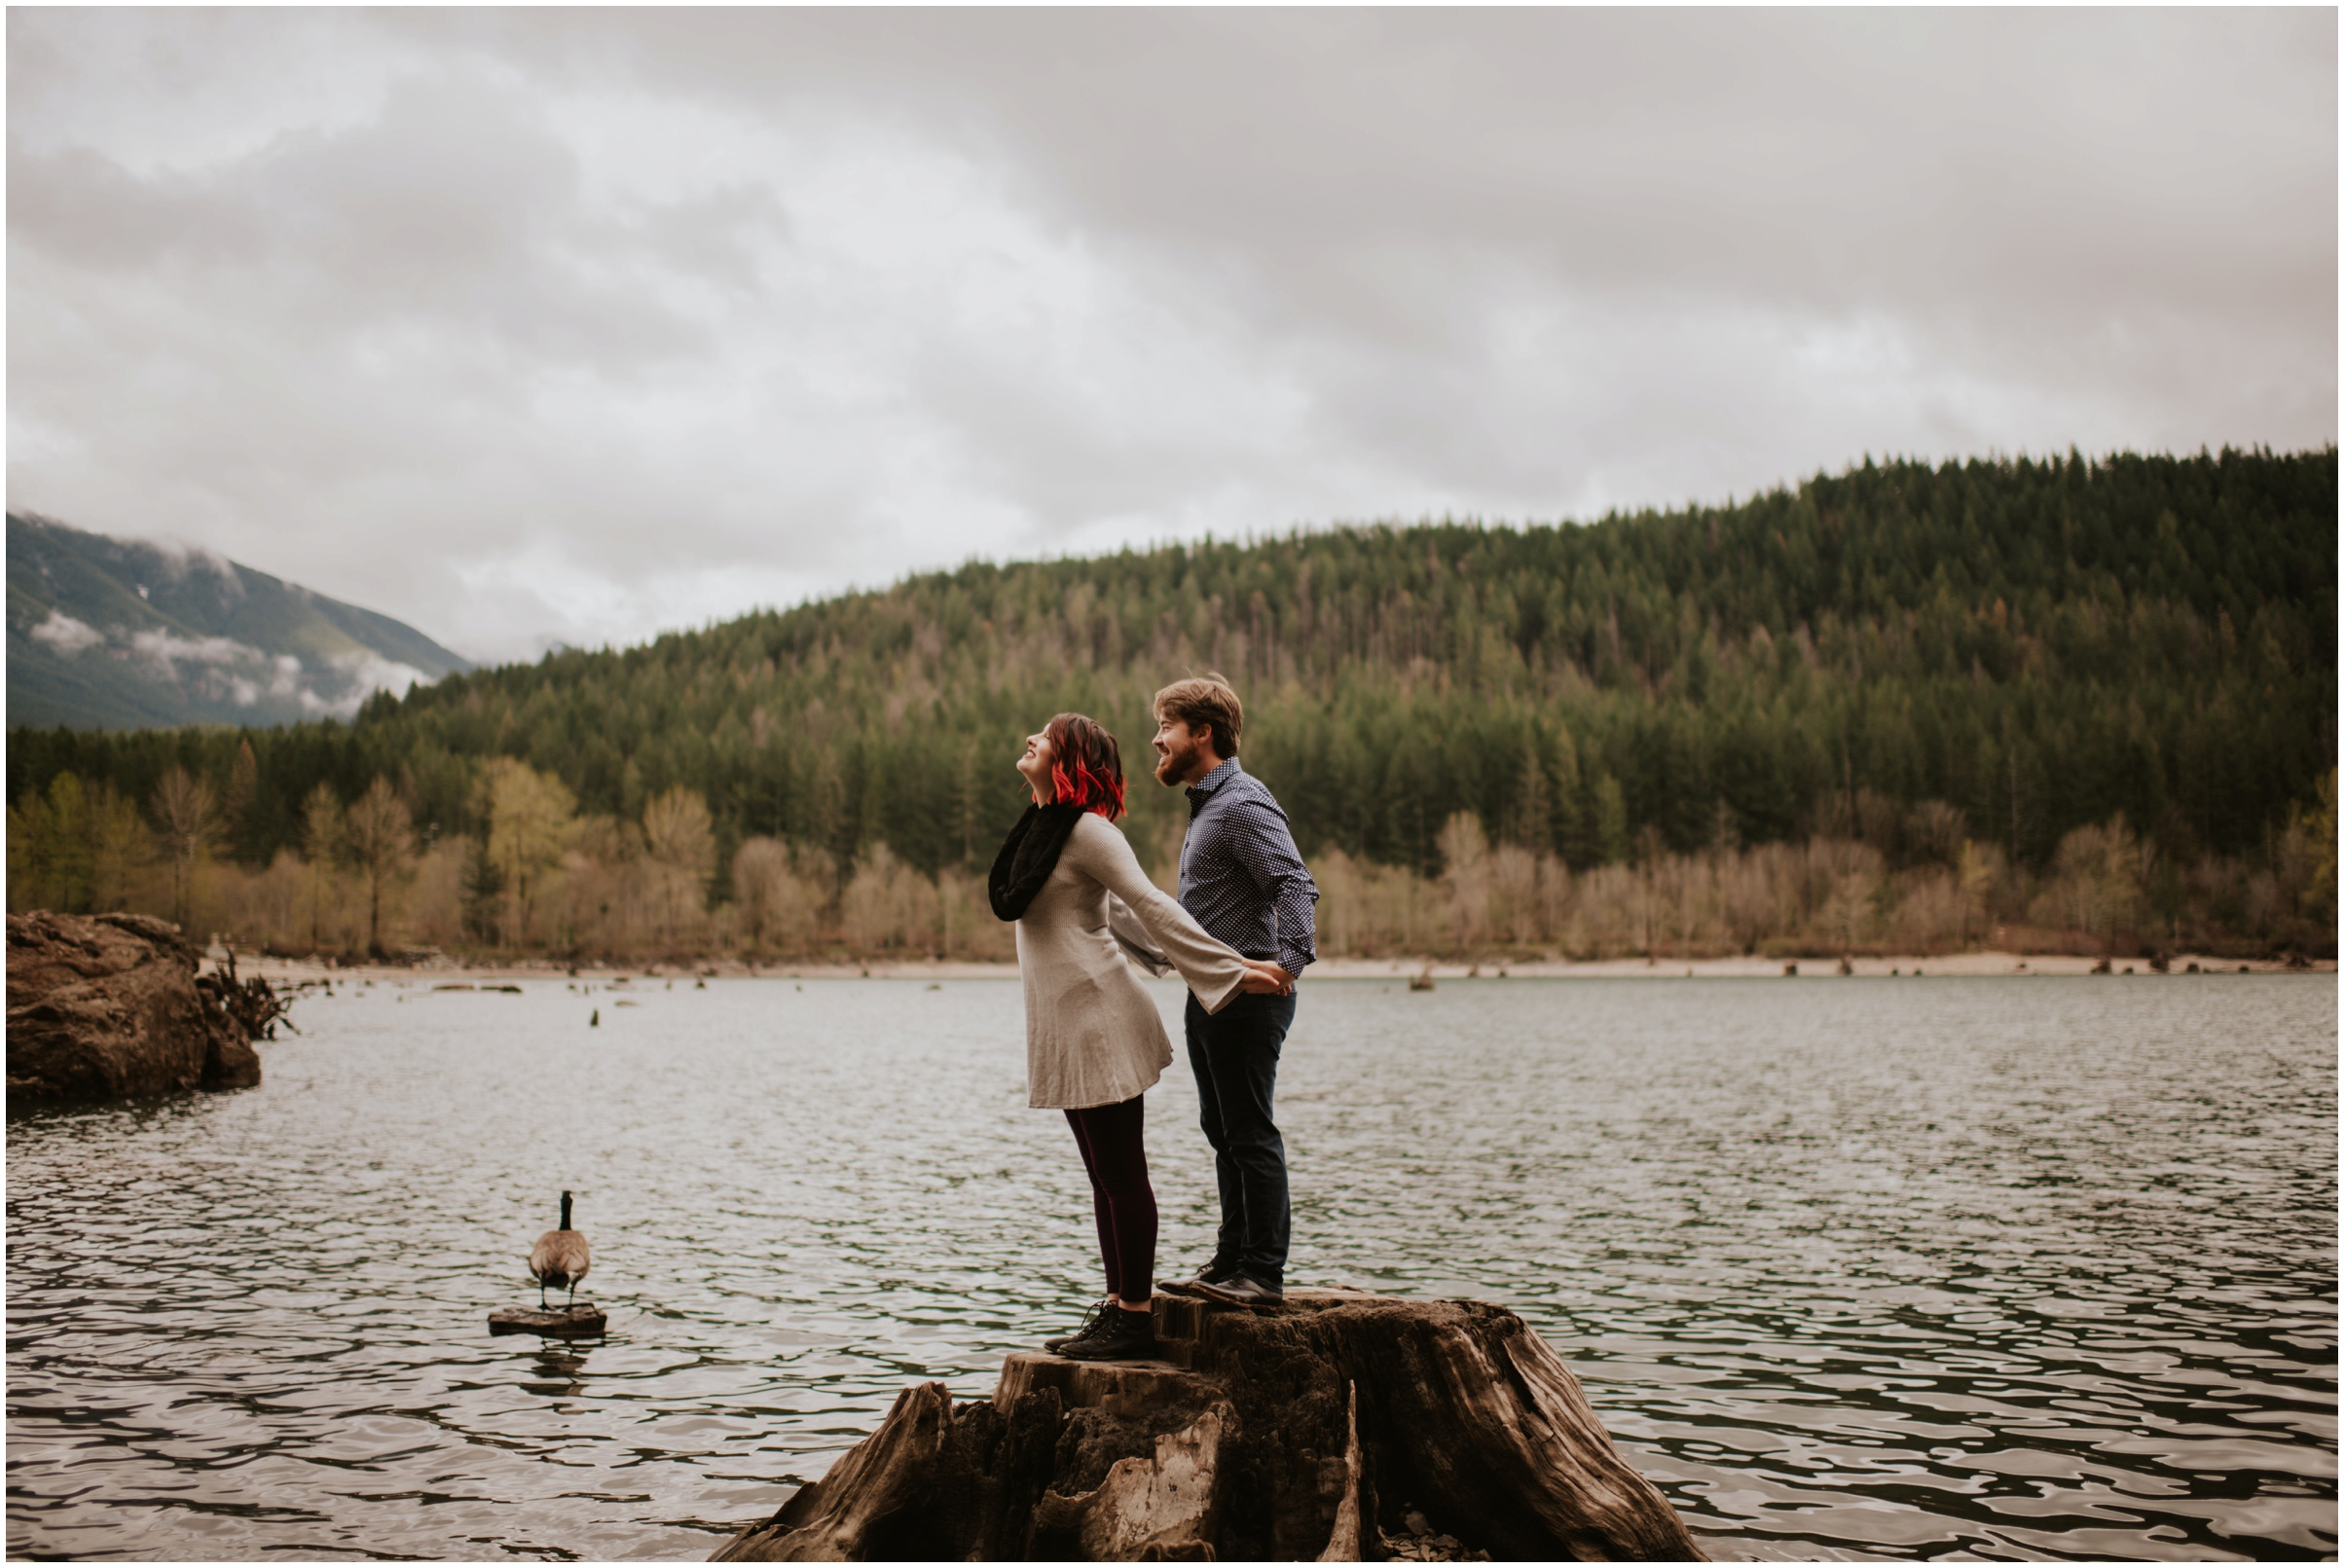 couple modeling at Rattlesnake Lake, WA | Engagement Photographer Seattle www.riversandroadsphotography.com